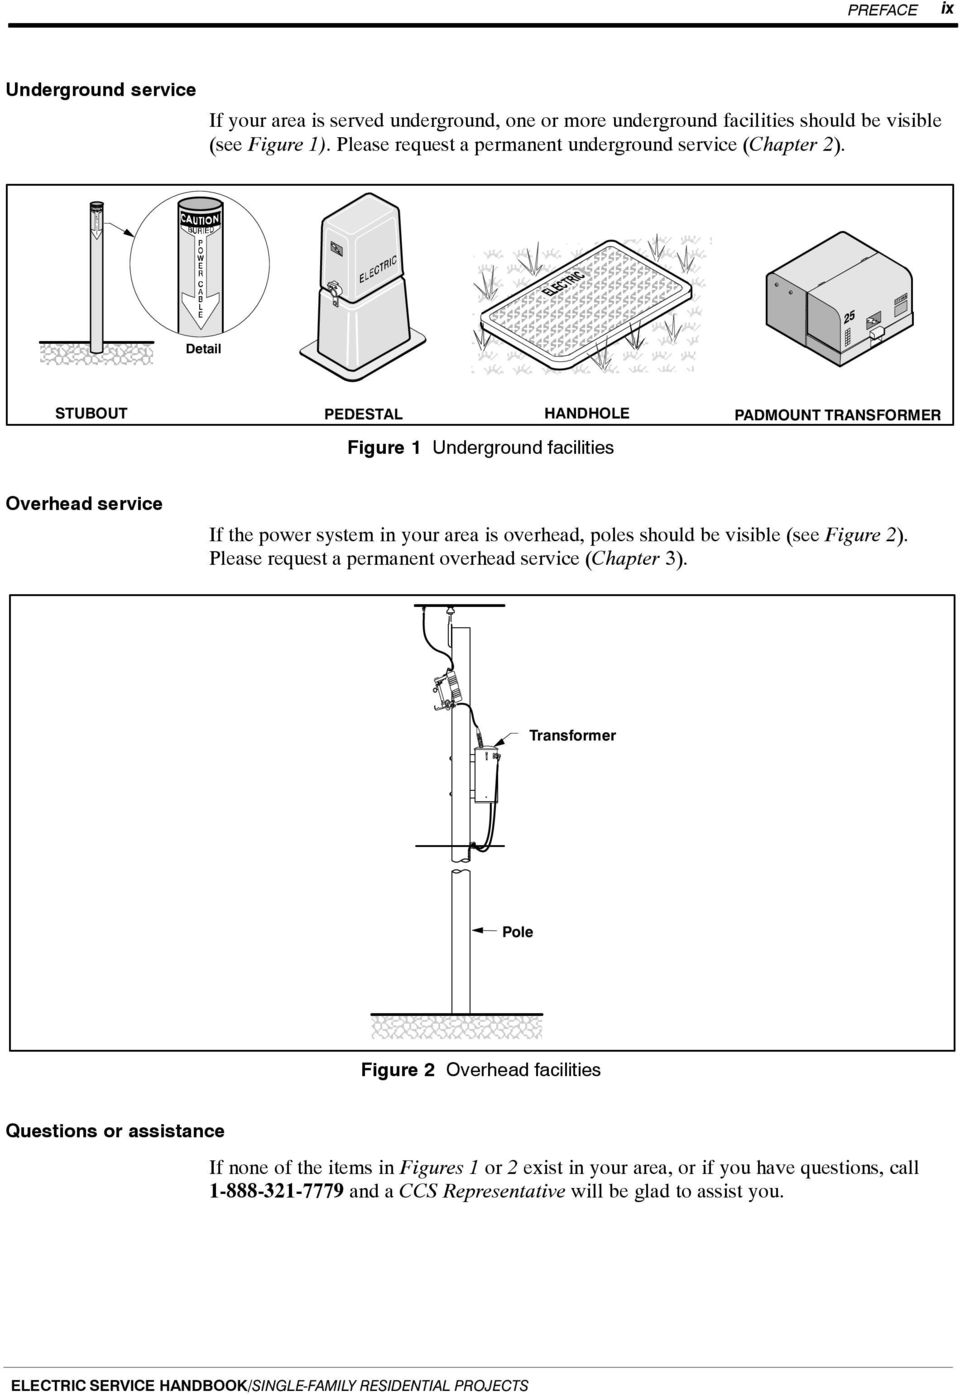 June 2014 Electric Service Handbook Pdf Residential Electrical Diagram Transformer Overhead If The Power System In Your Area Is Poles Should Be